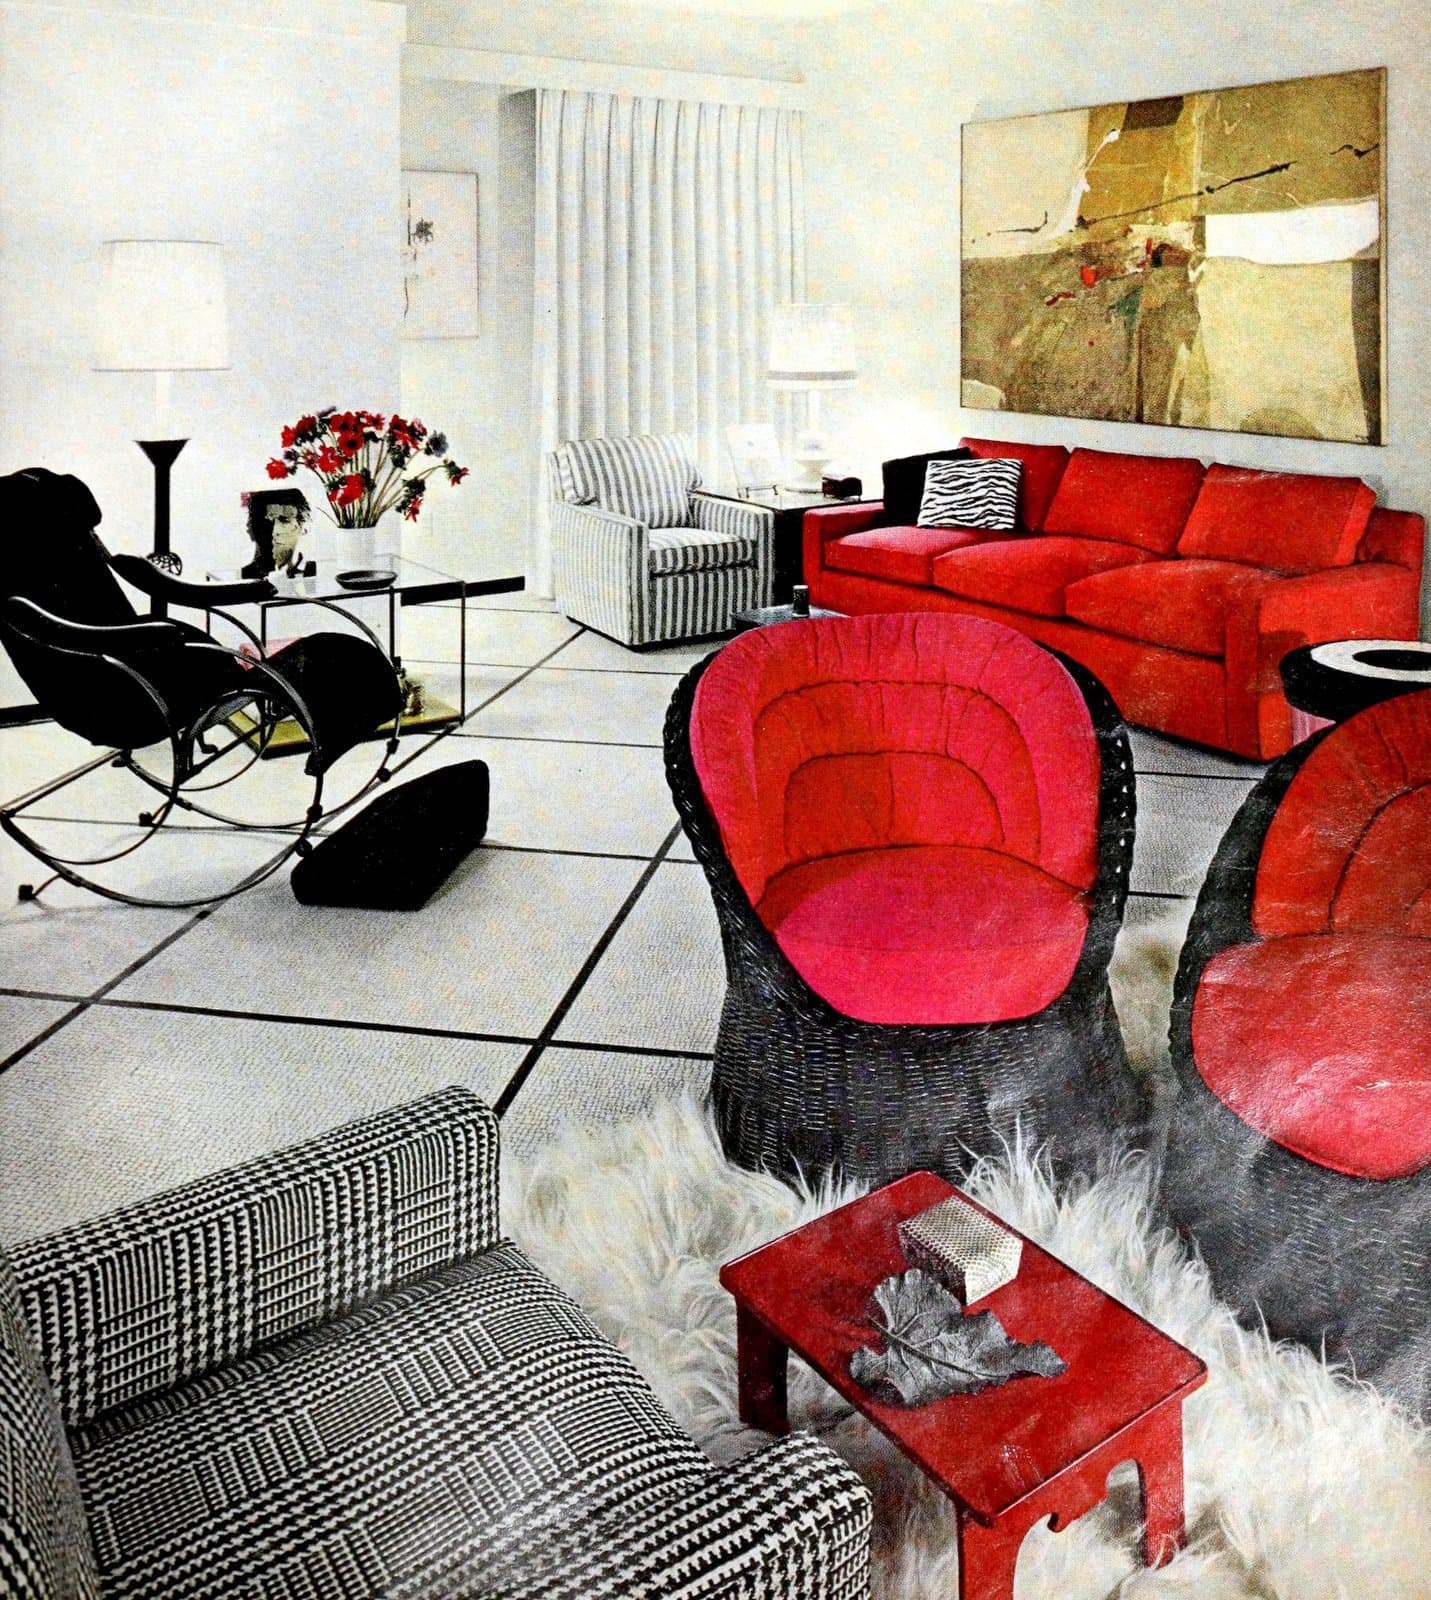 Curved black wicker chairs with red cushions - plus a sleek curvy rocking chair (1968)